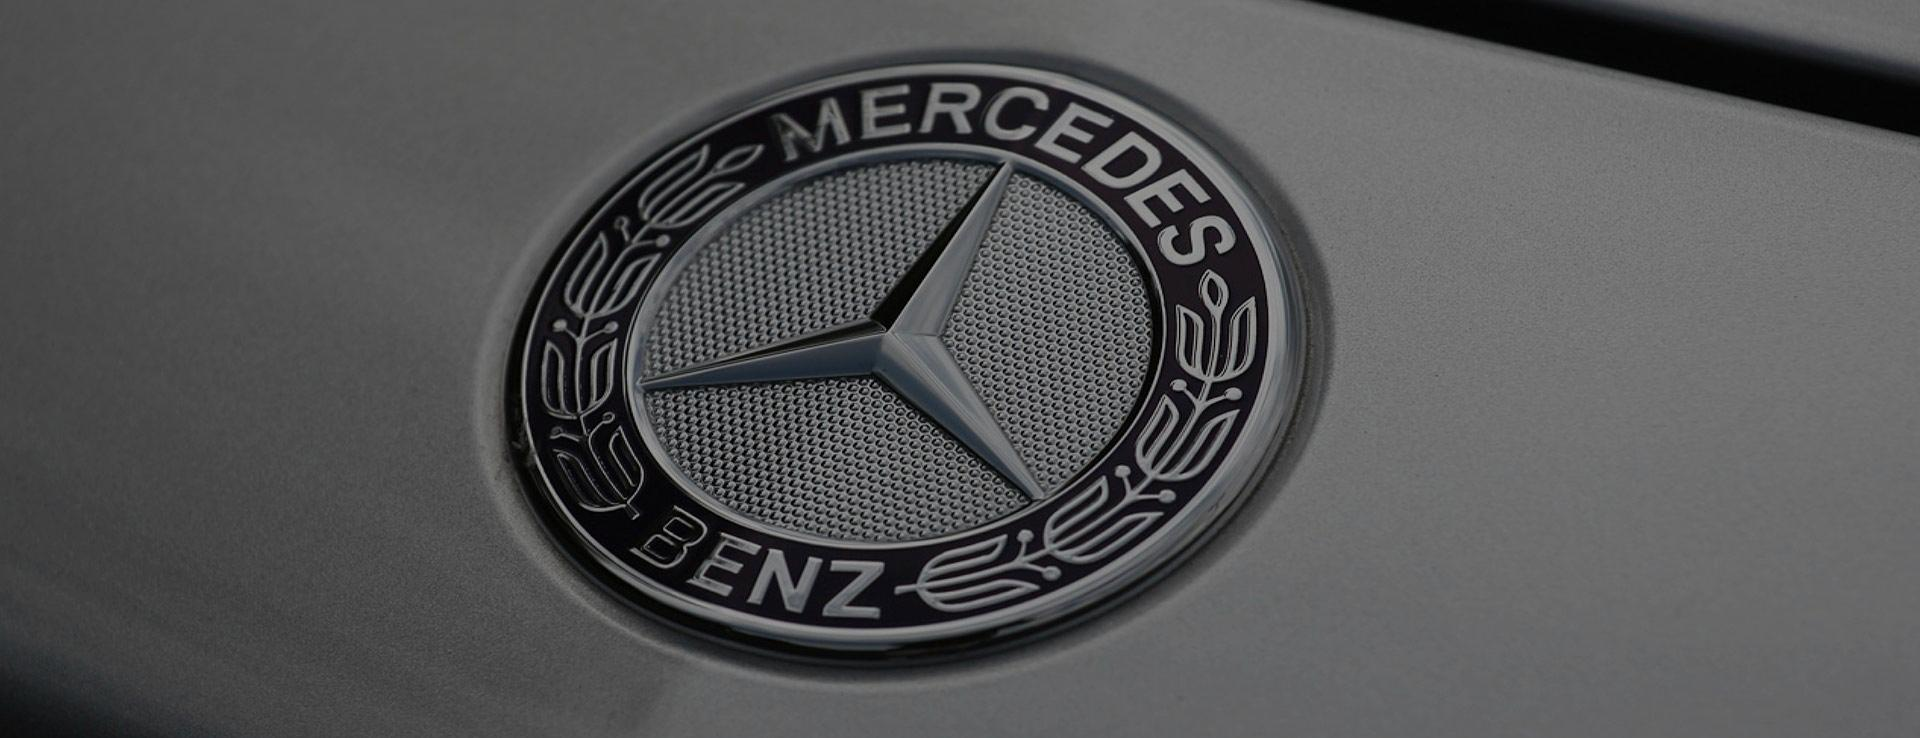 Mercedes Service: What You Need To Know